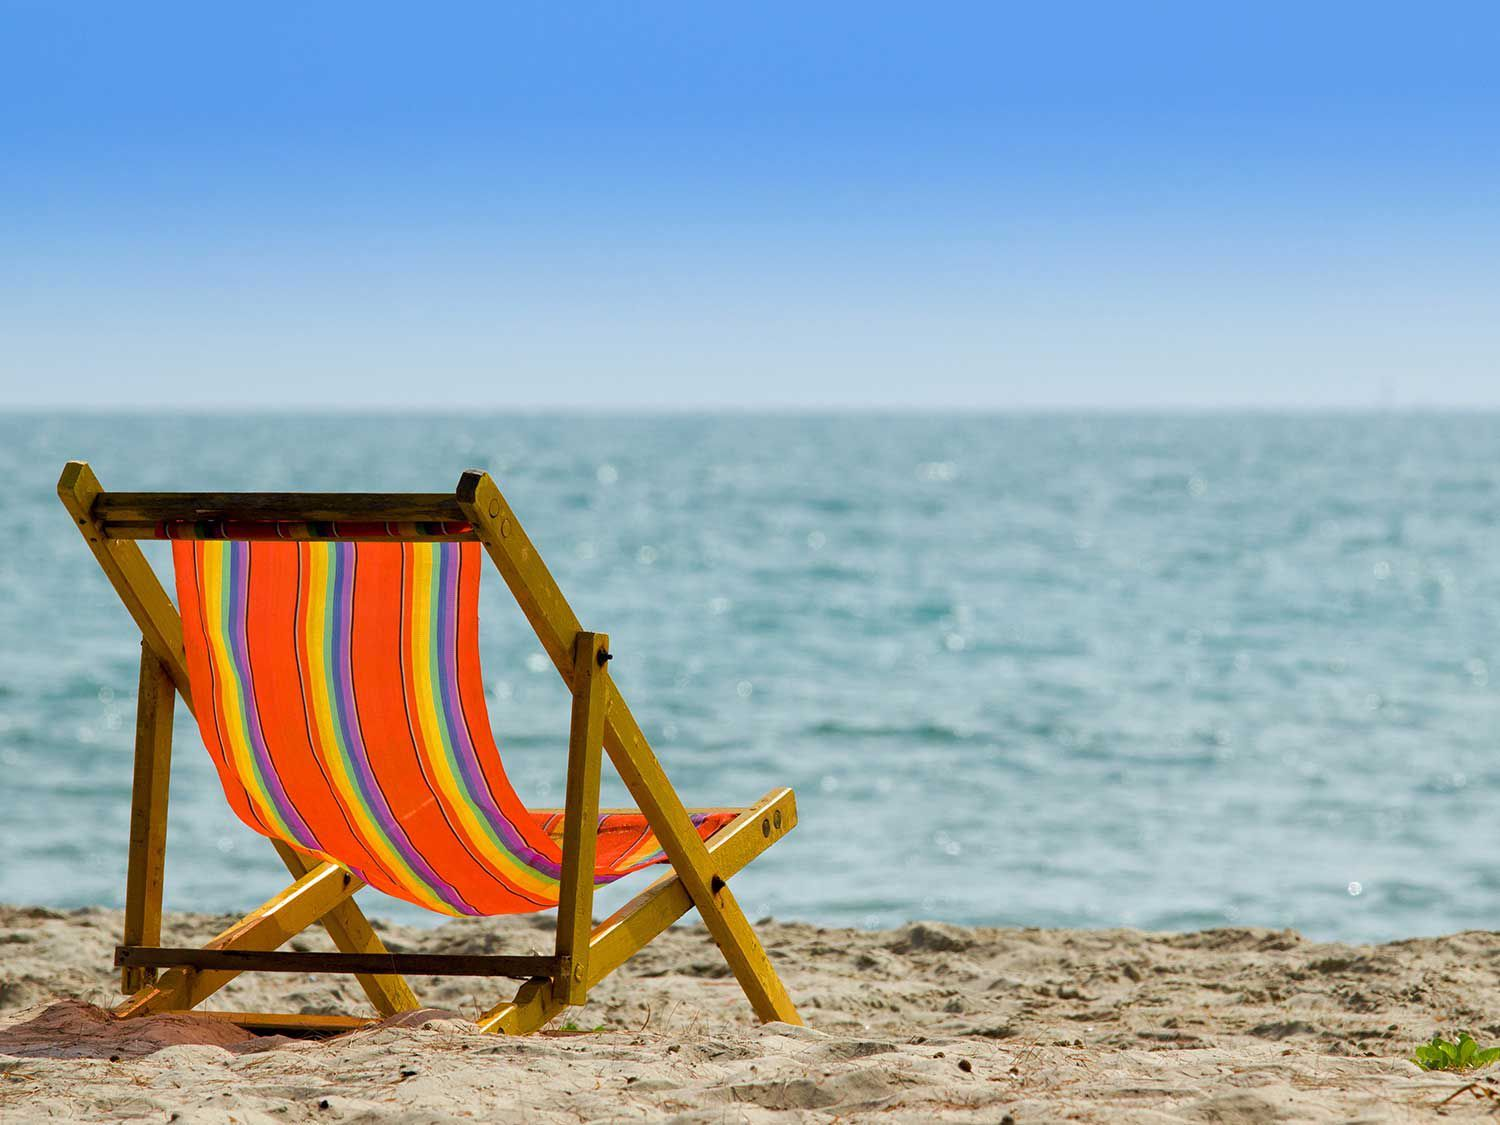 The Best Beach Chairs For Claiming Your Spot Next To The Ocean In 2020 Best Beach Chair Beach Chairs Chair